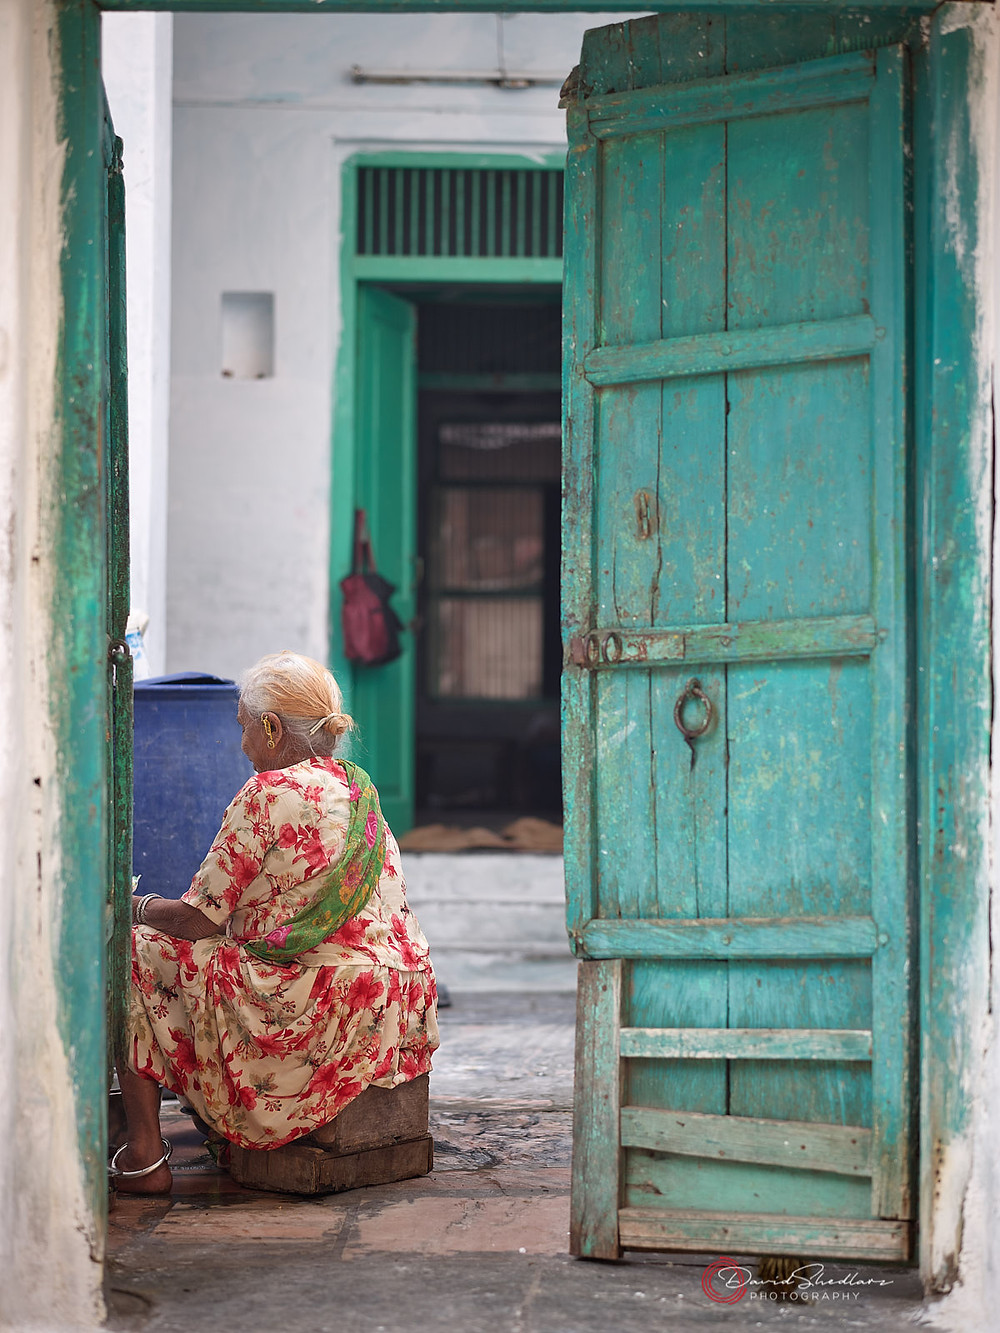 Woman in Doorway - India | David Shedlarz Photography